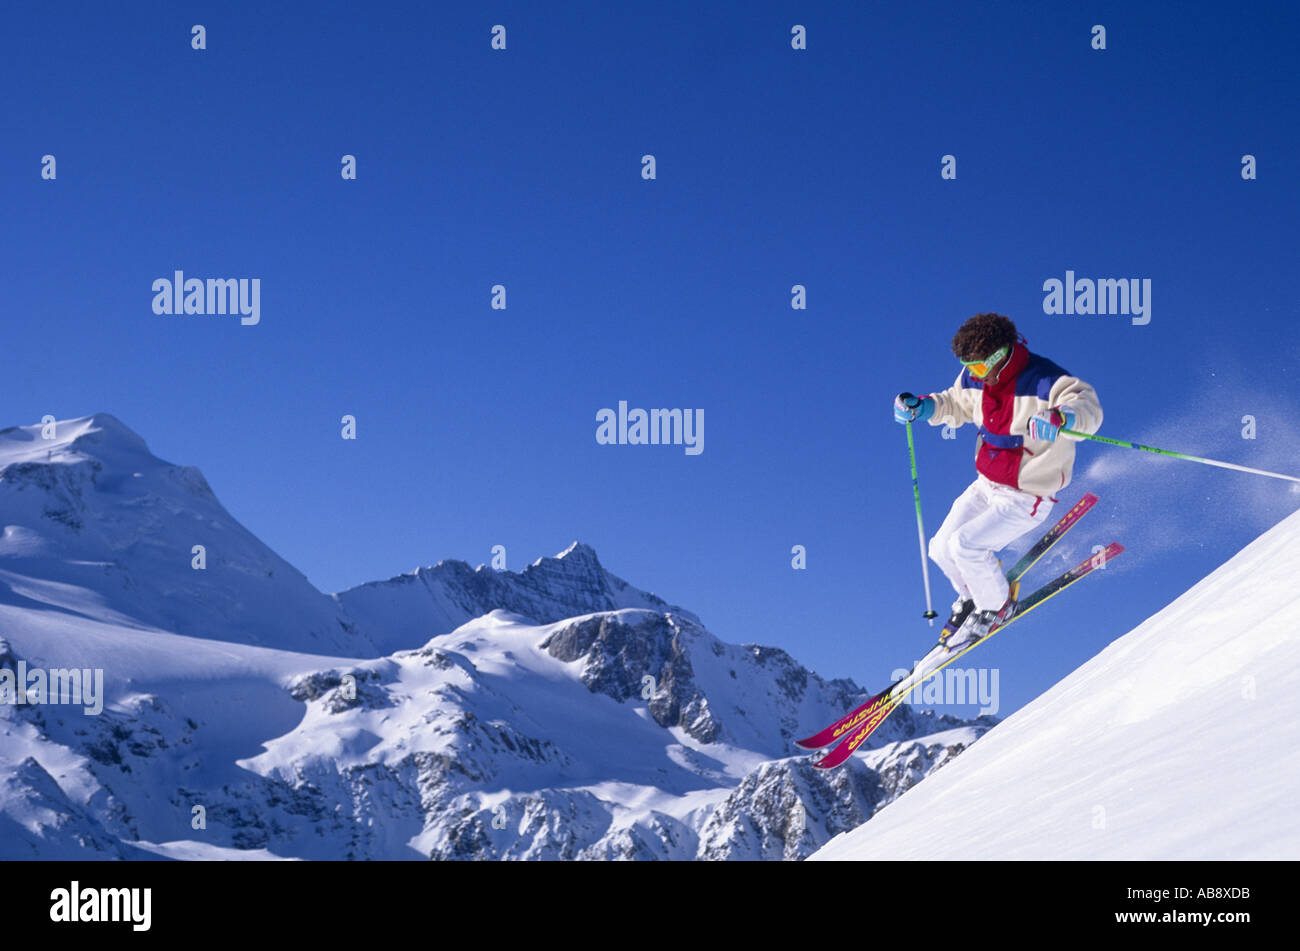 skier racing down a piste, jumping, mountain tops in the background, France, Rhne-Alpes, Tignes. - Stock Image